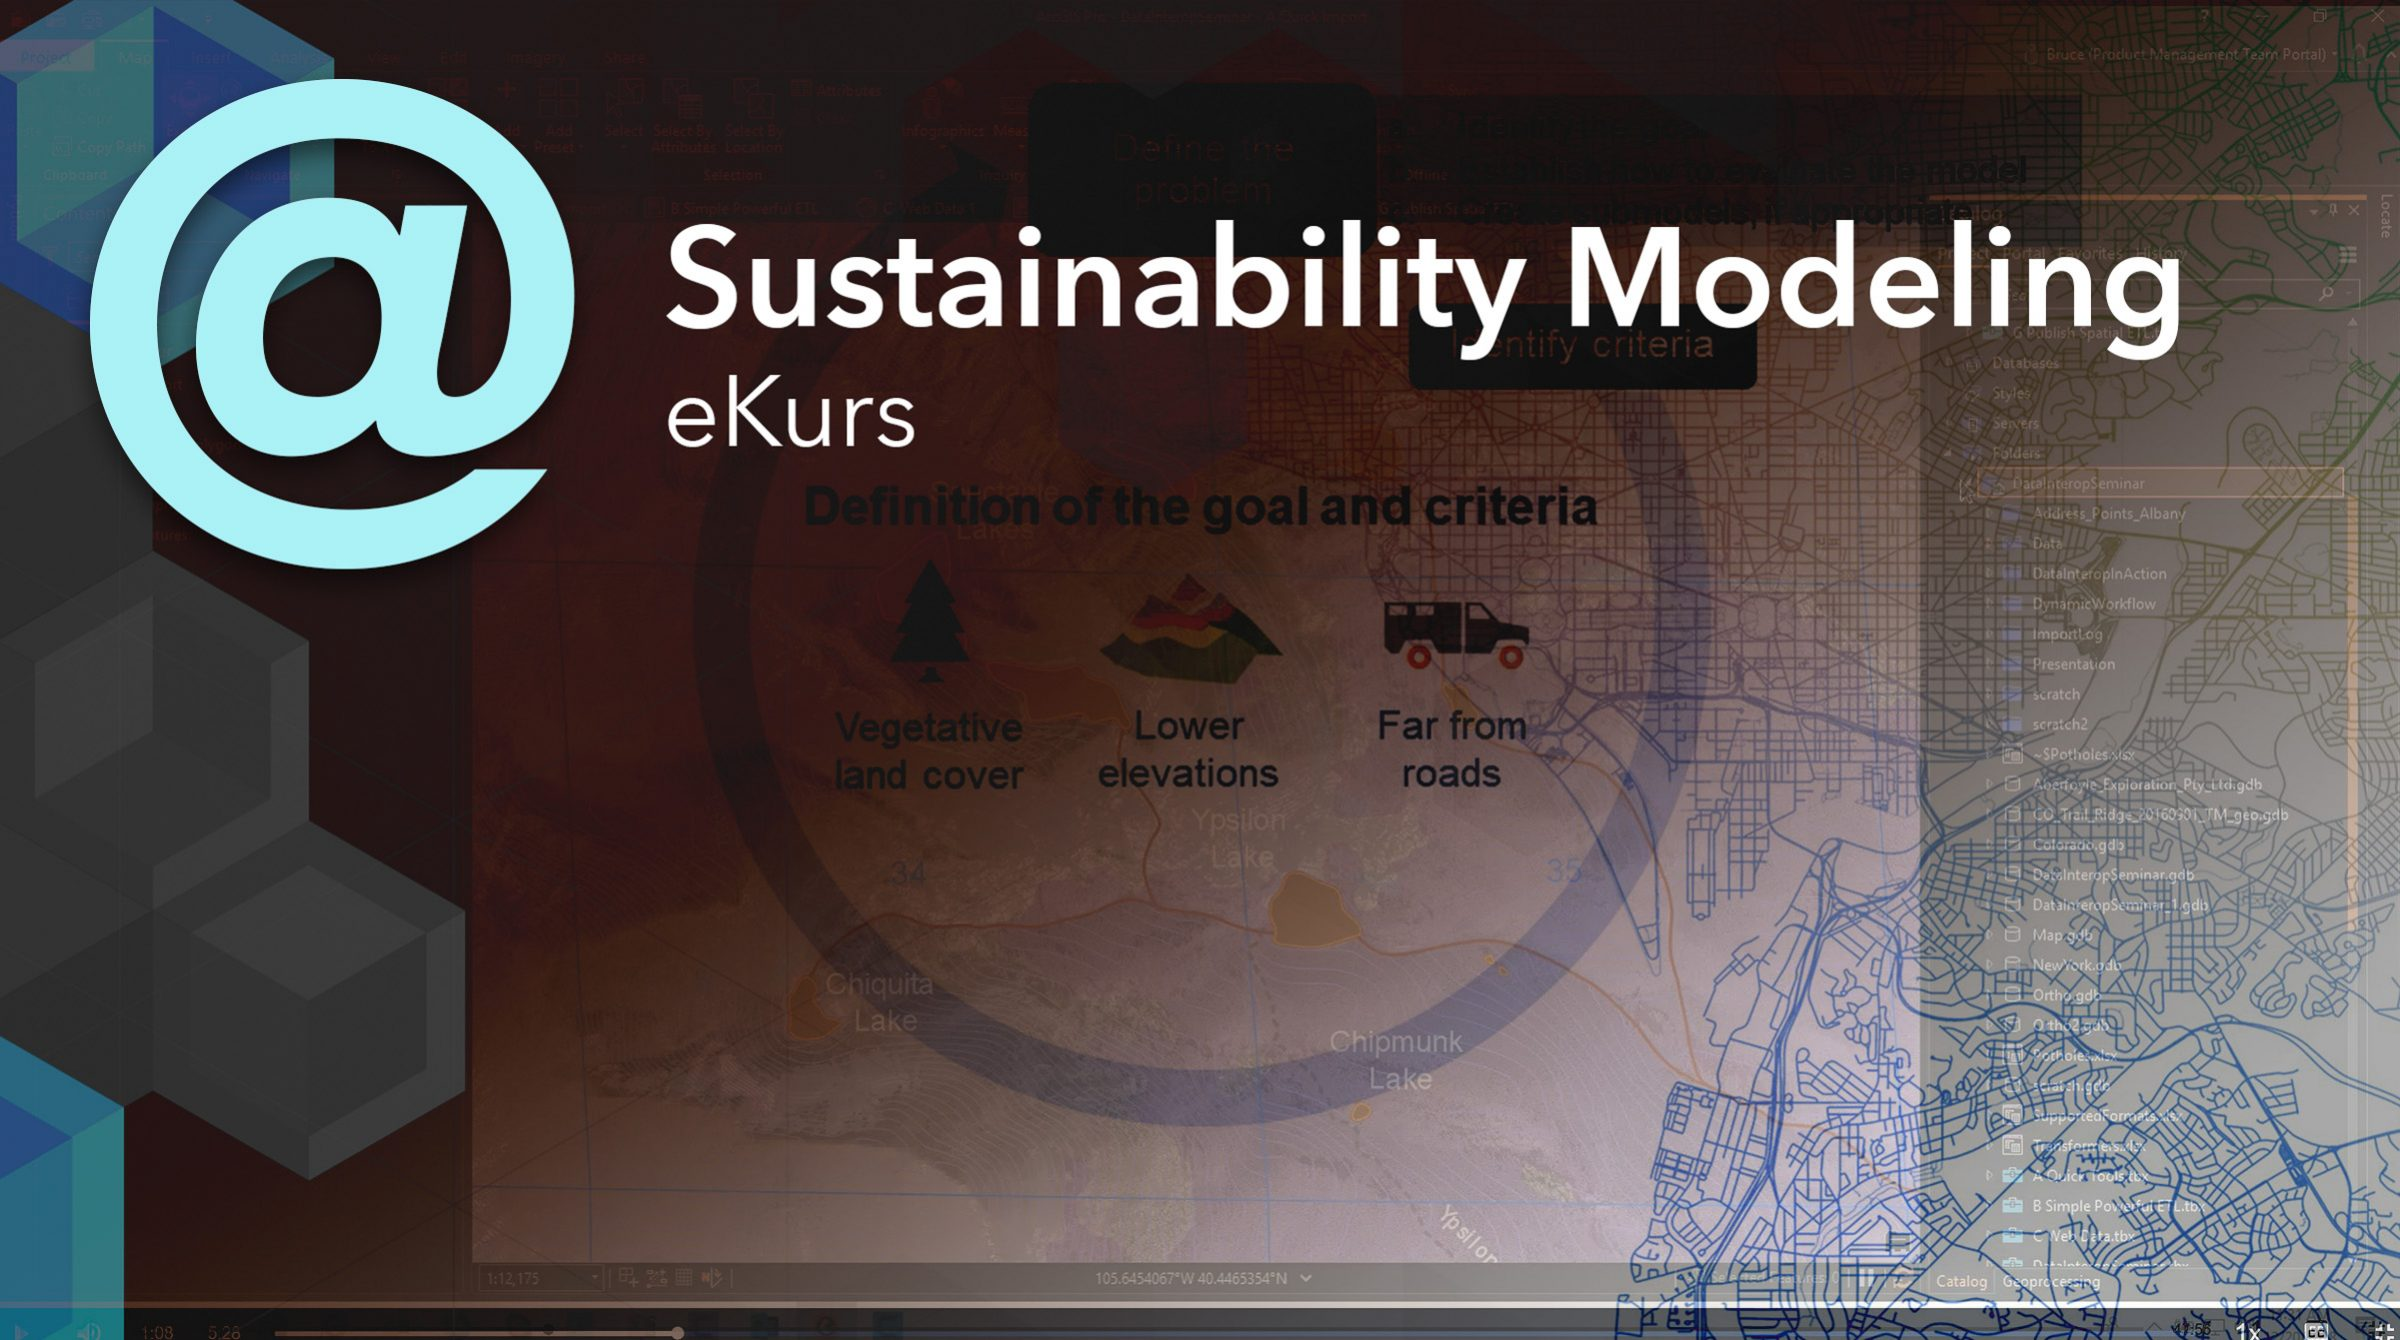 e-kurs i Sustainability Modeling